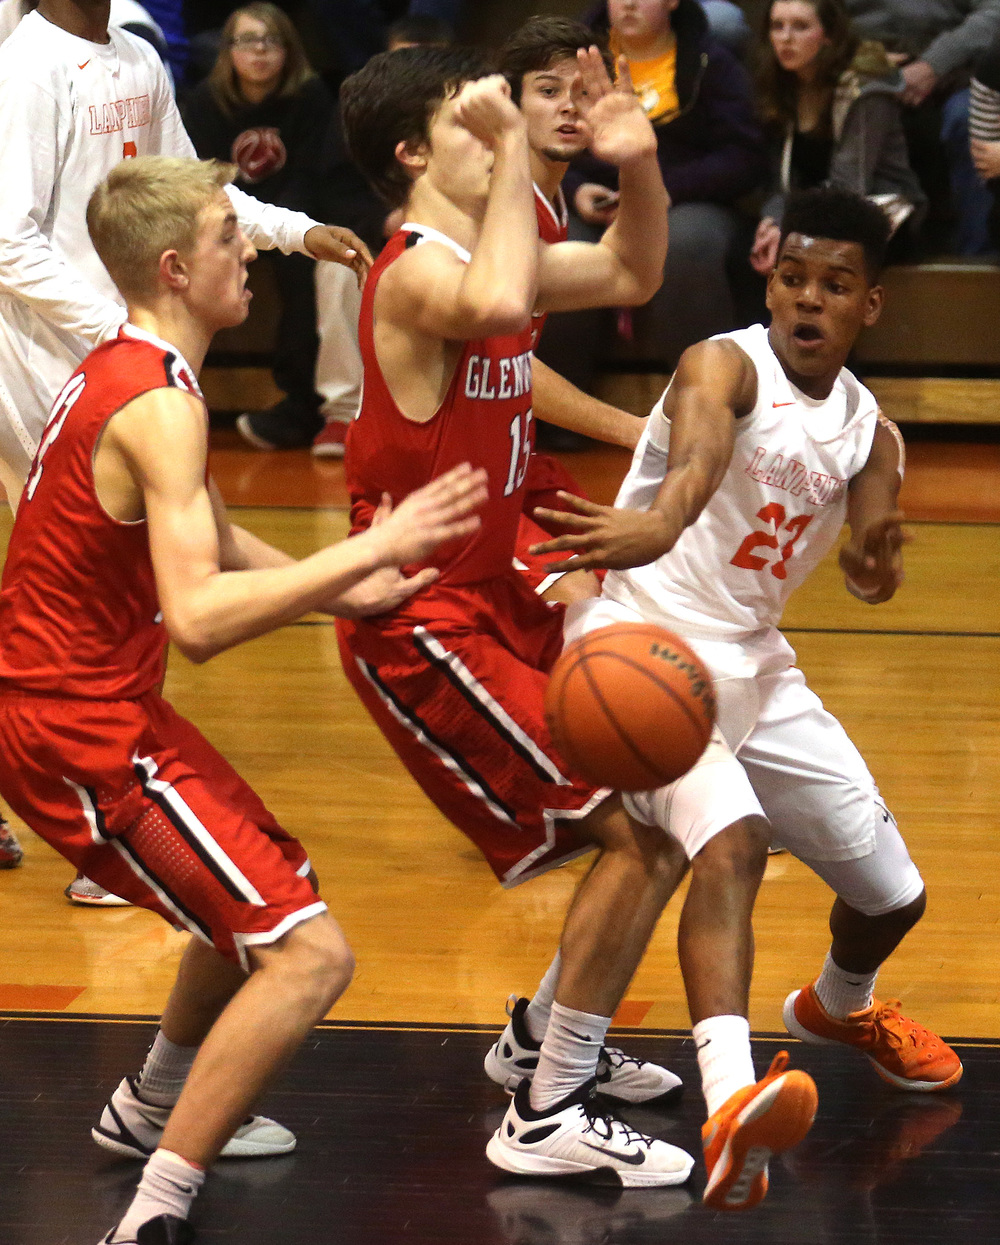 Lanphier's Aundrae Williams passes the ball past Glenwood defenders Karson Aherin at left and Joel Alexander. David Spencer/The State Journal Register